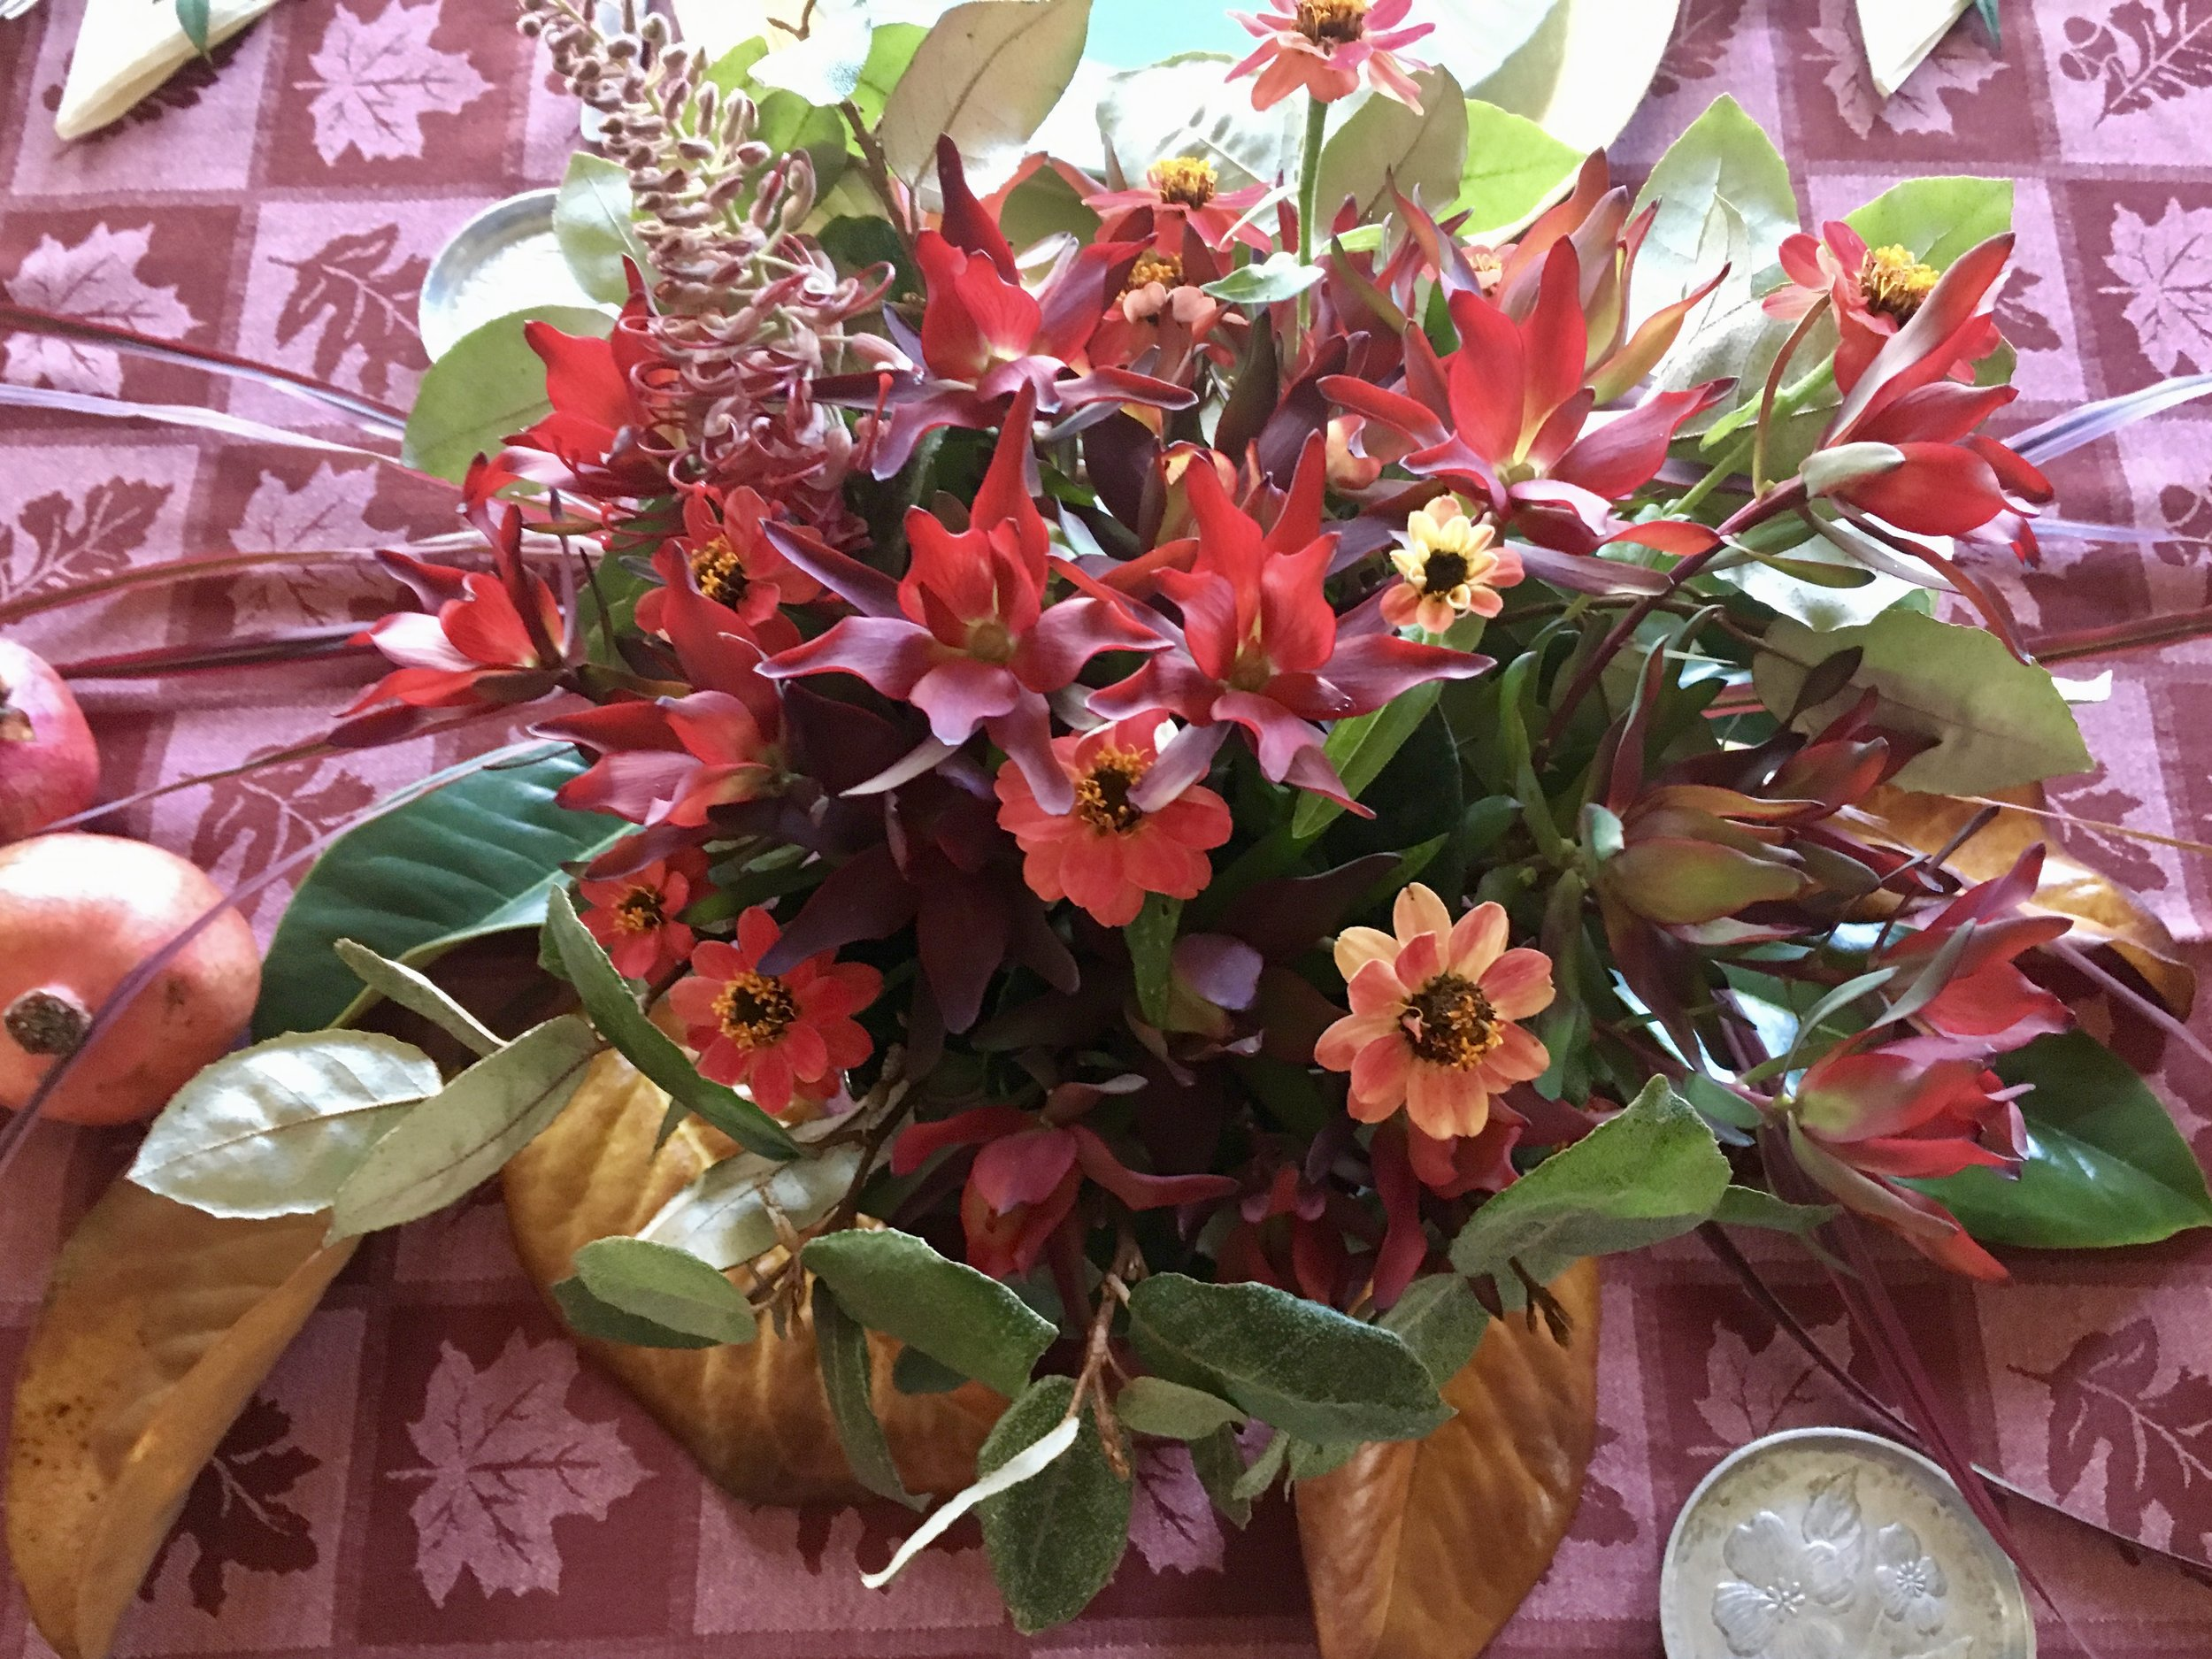 The Thanksgiving table bouquet